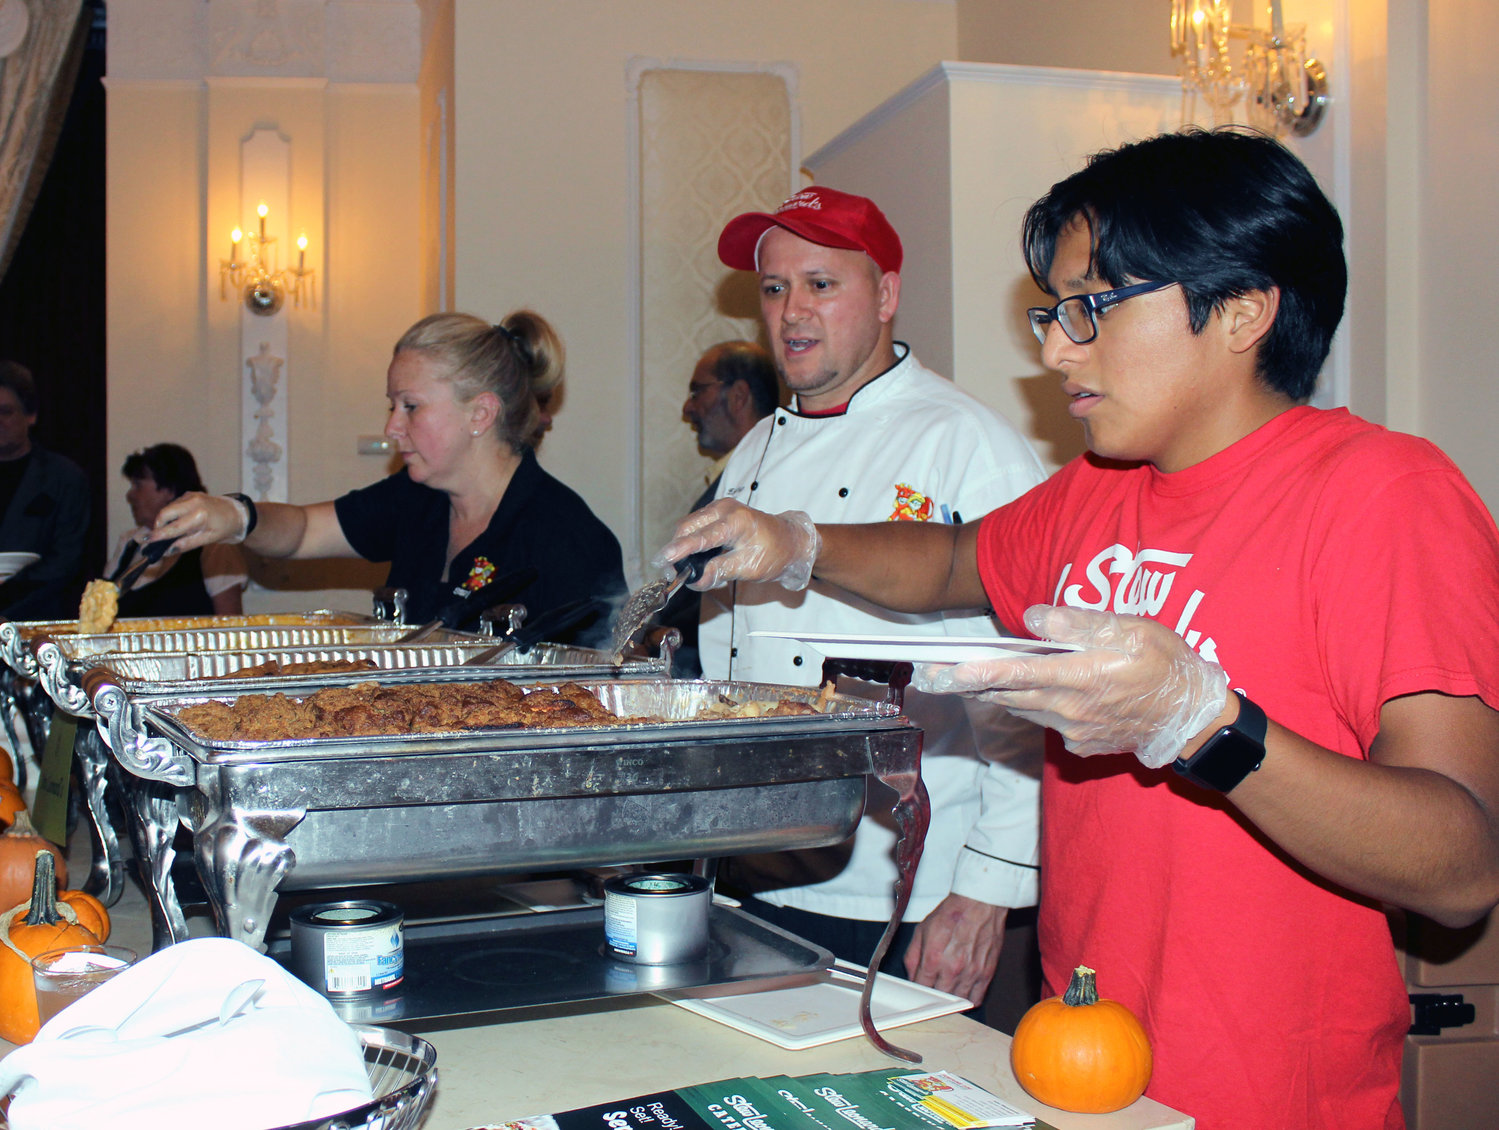 Randi Kopp, far left, German Escobar and Luis Ortega, all of Stew Leonard's in East Meadow, served some of the store's specialties at the 17th annual Culinary Delights, hosted by the East Meadow Chamber of Commerce on Monday.